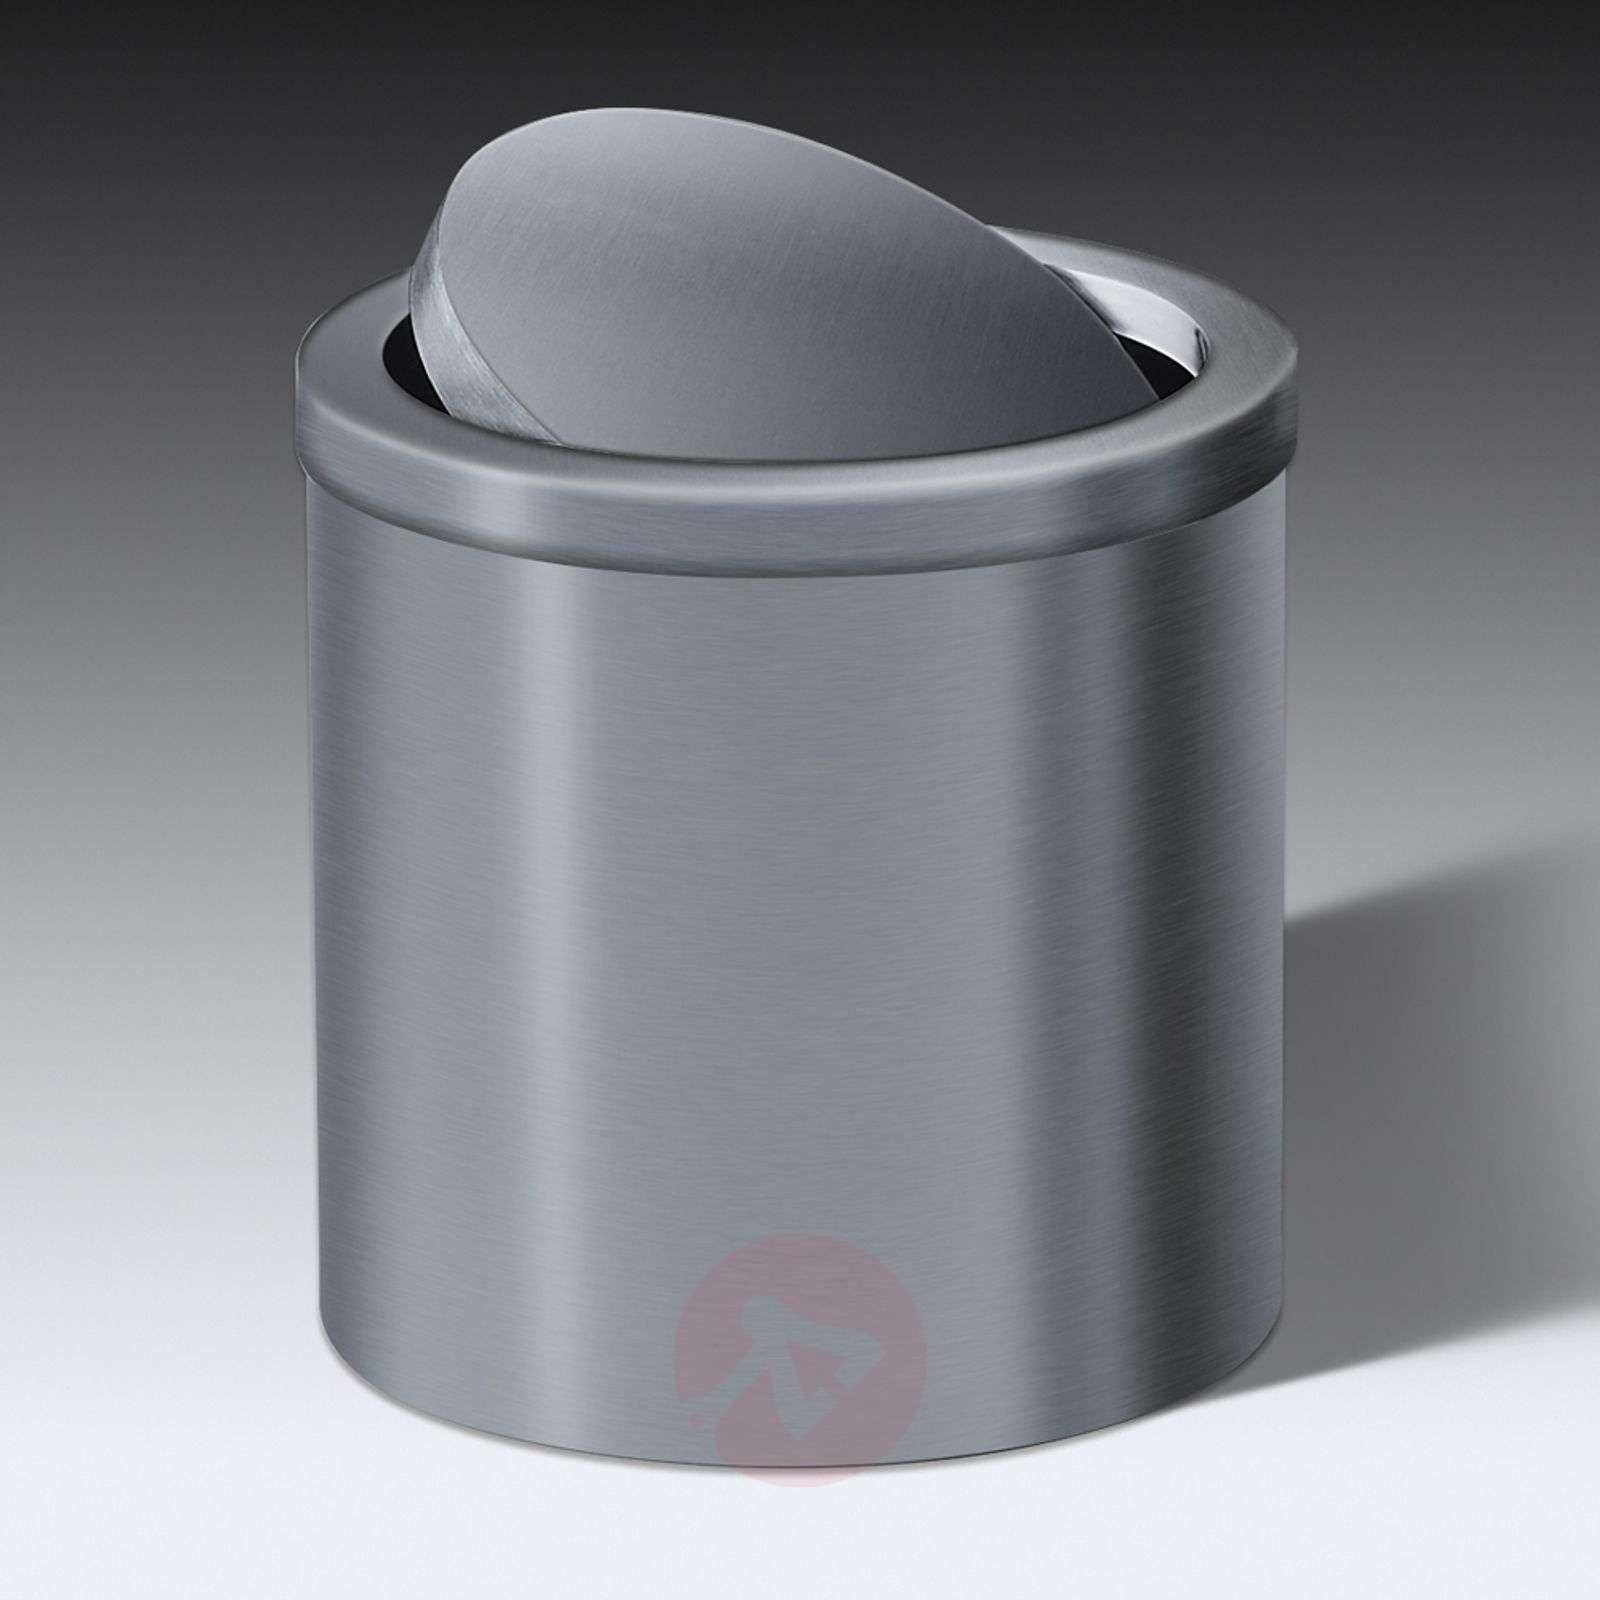 BIN waste paper container, height 21 cm-2504384X-01